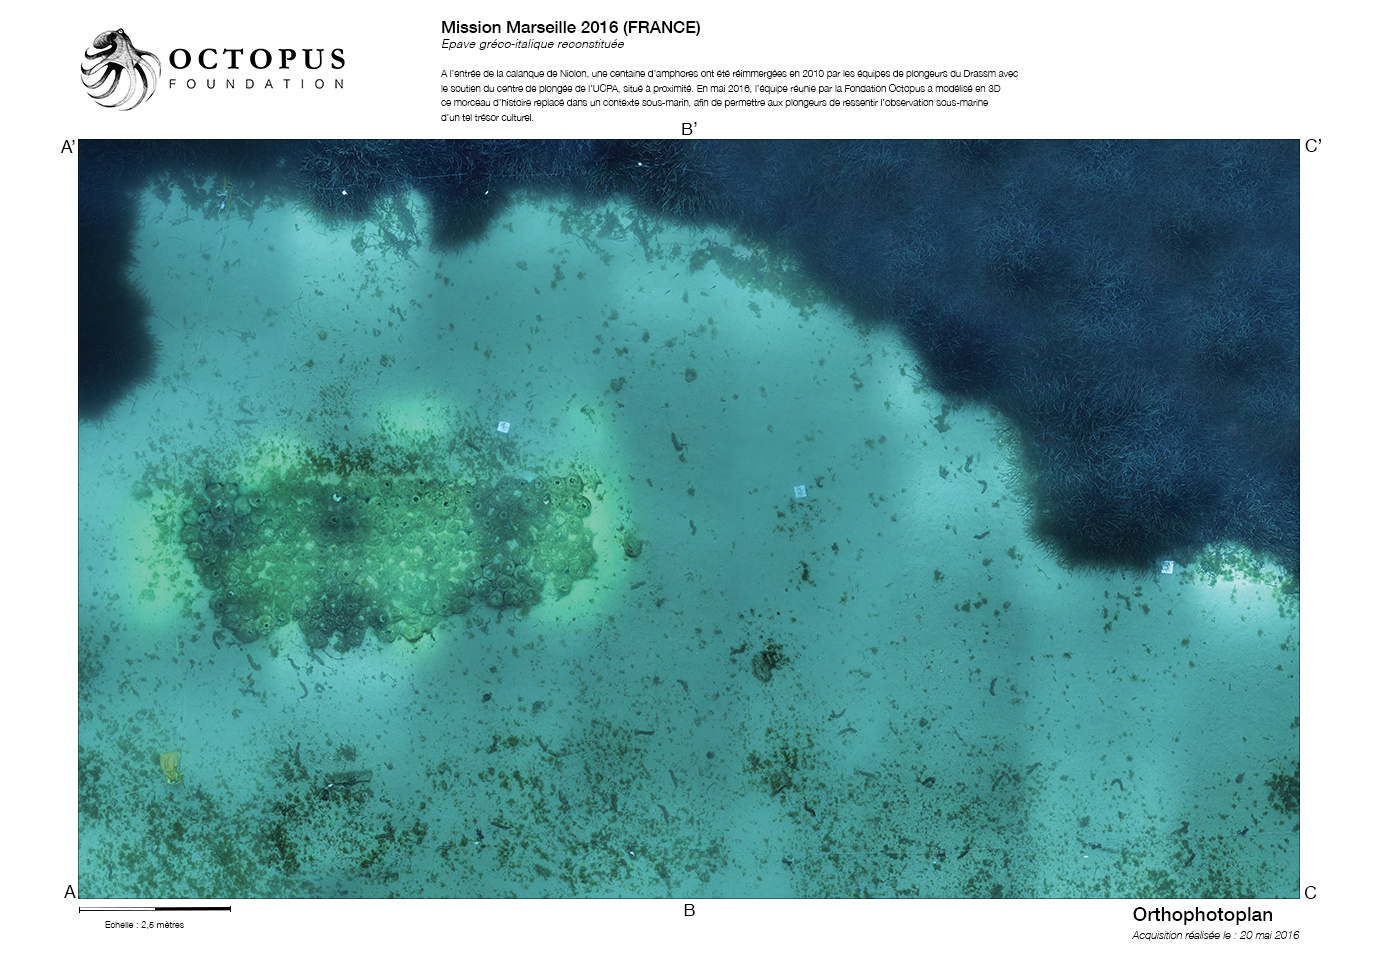 Orthophotoplan is a vertical projection of the 3D model ; a scientific tool that can provide the Octopus Foundation to underwater archeologists and biologists alike © Octopus Foundation